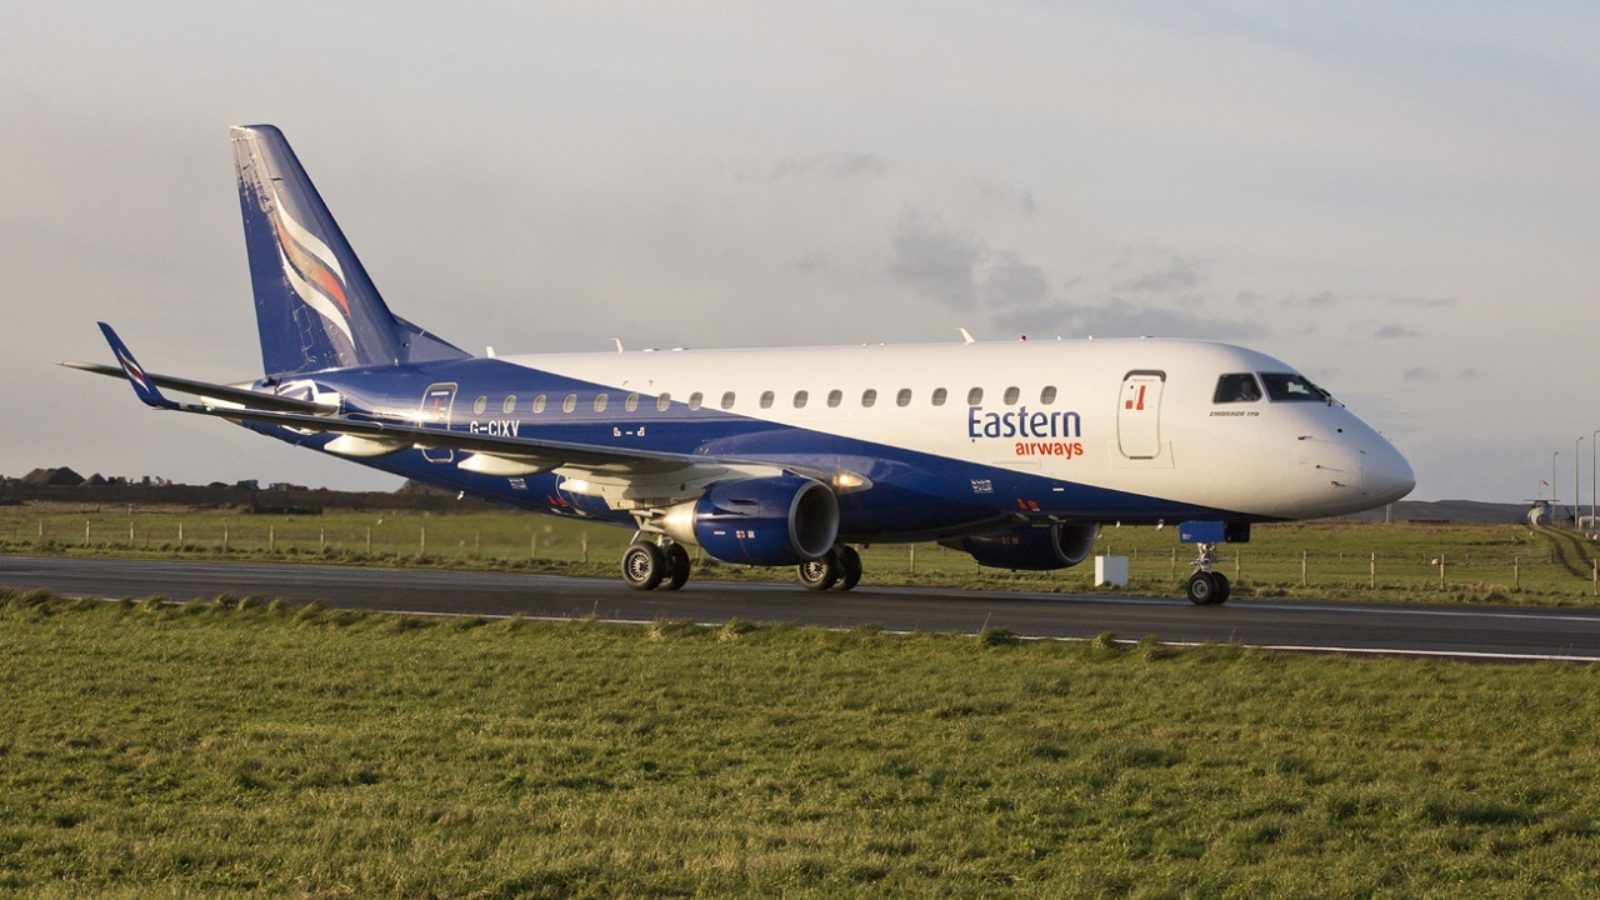 Aberdeen Airport operator joins Heathrow's list of airlines